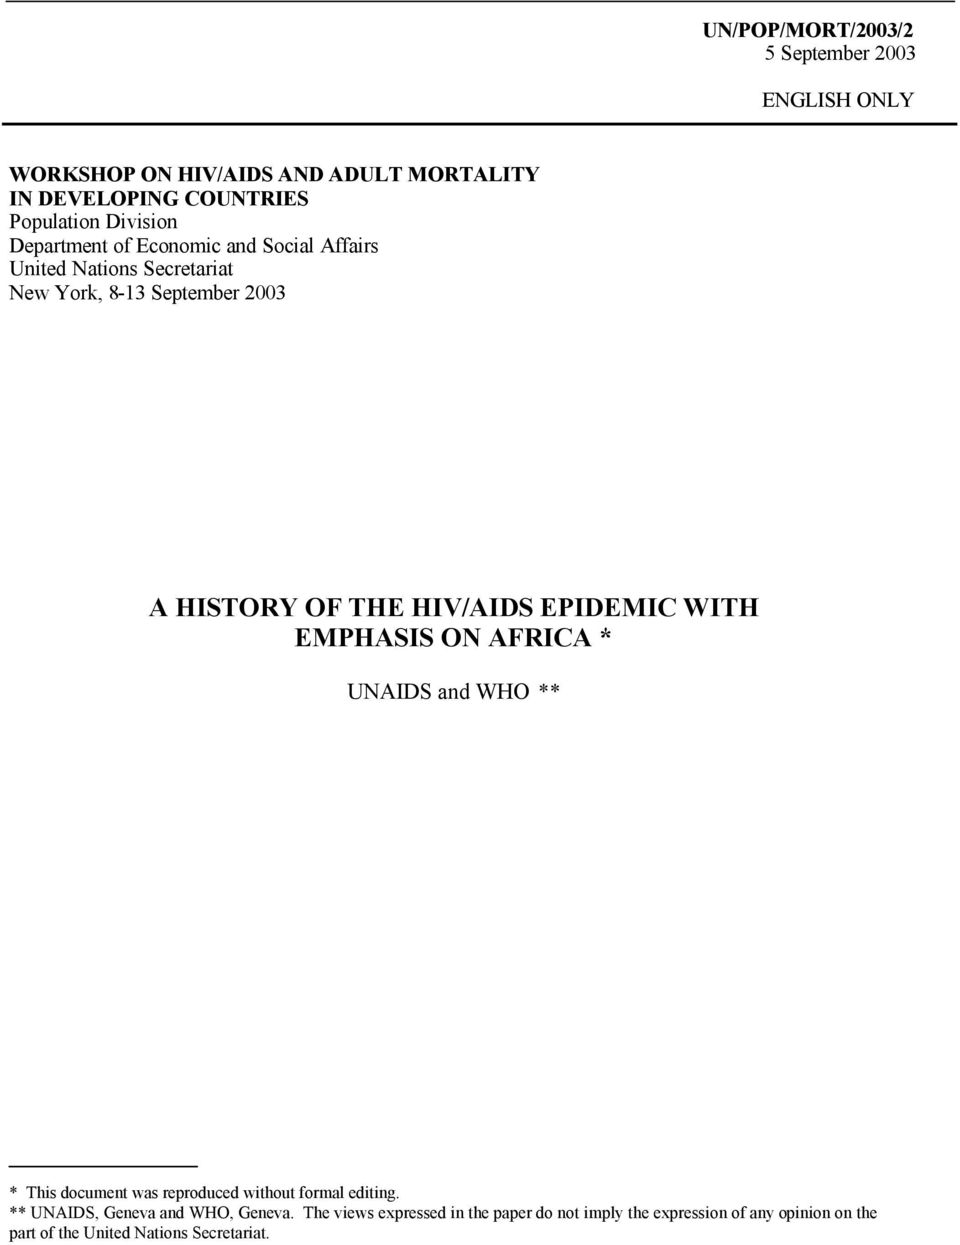 HIV/AIDS EPIDEMIC WITH EMPHASIS ON AFRICA * UNAIDS and WHO ** * This document was reproduced without formal editing.